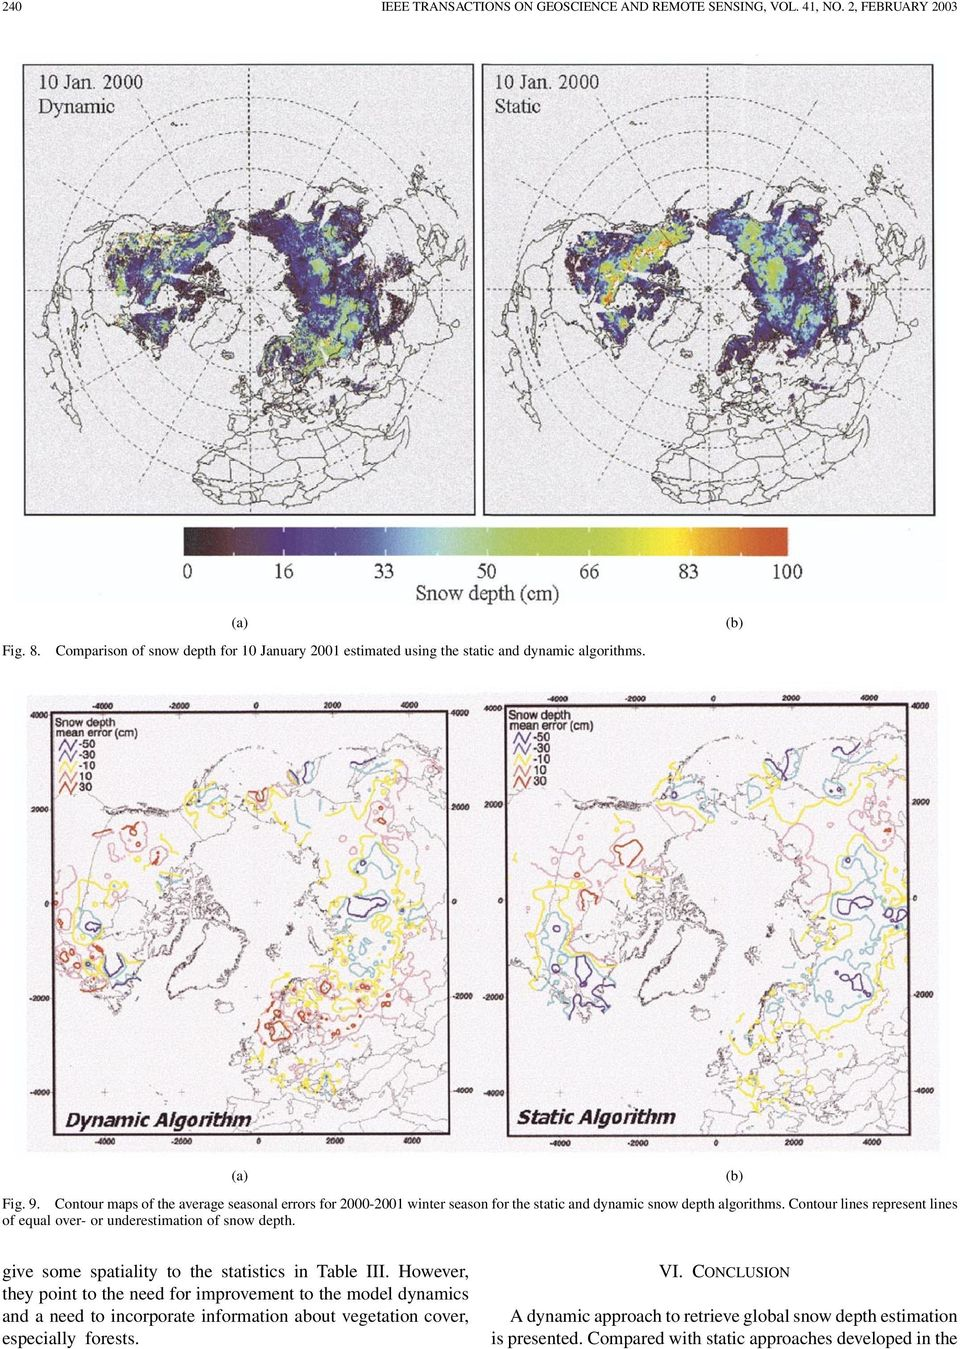 Contour maps of the average seasonal errors for 2000-2001 winter season for the static and dynamic snow depth algorithms.